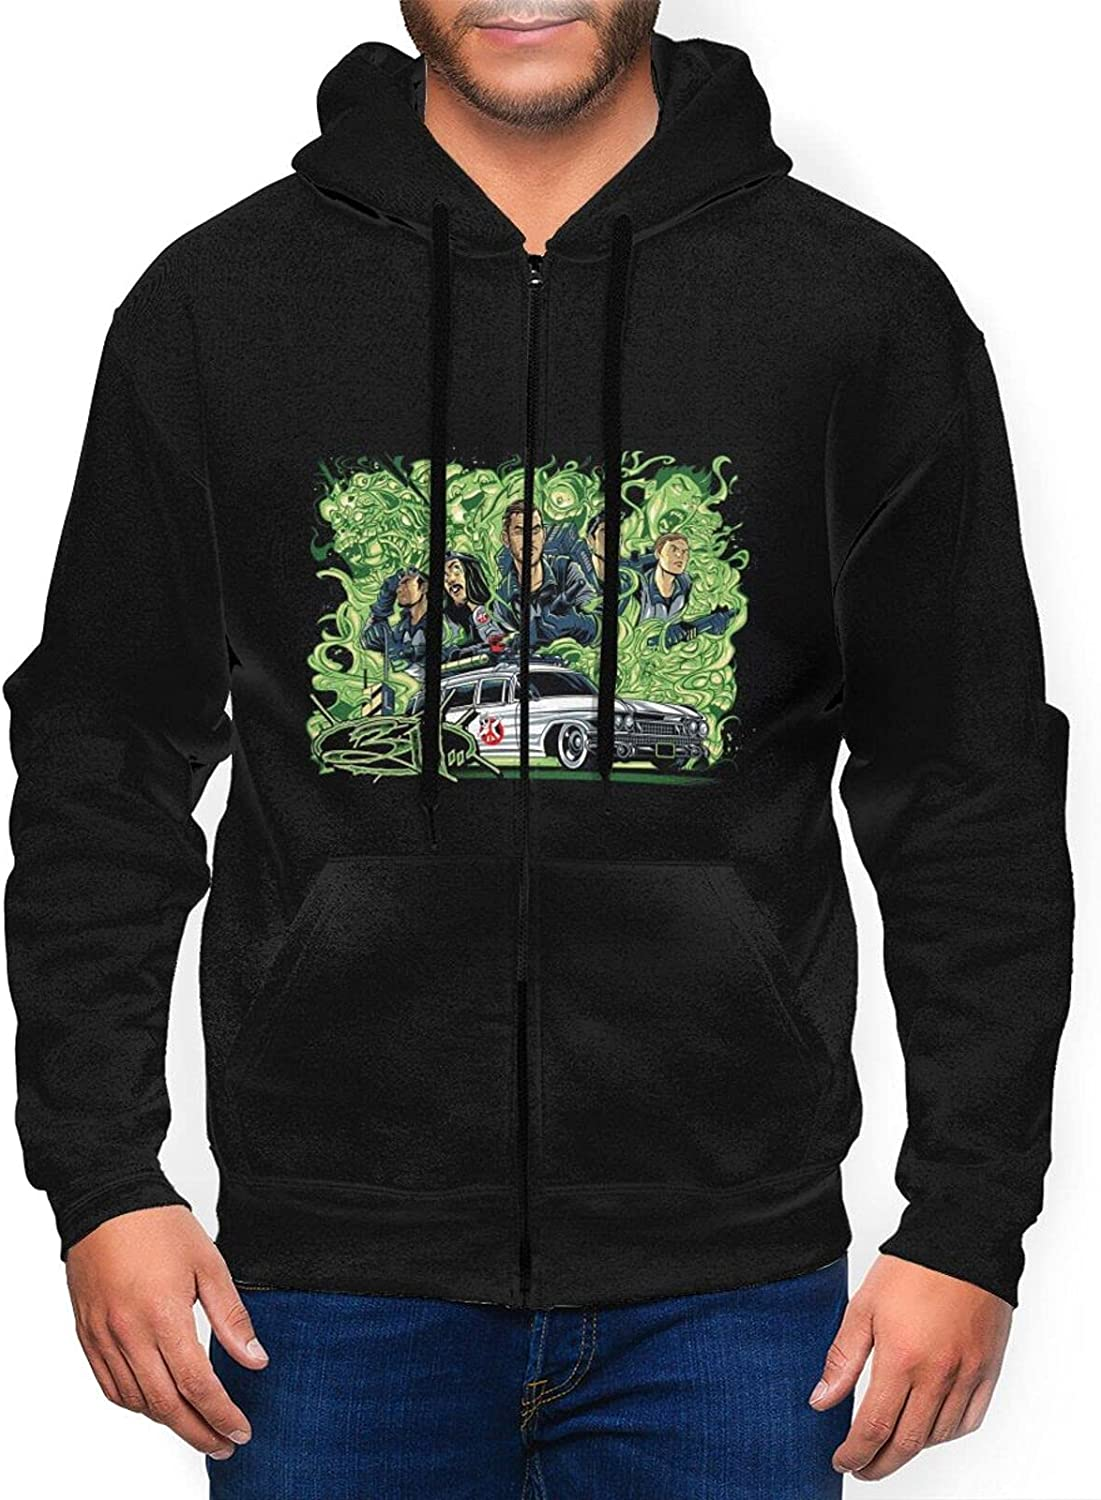 Ruporch Lowest price challenge 311-Band Men's Hoodie Fashion Full Active Zip Sweatshirt Hooded